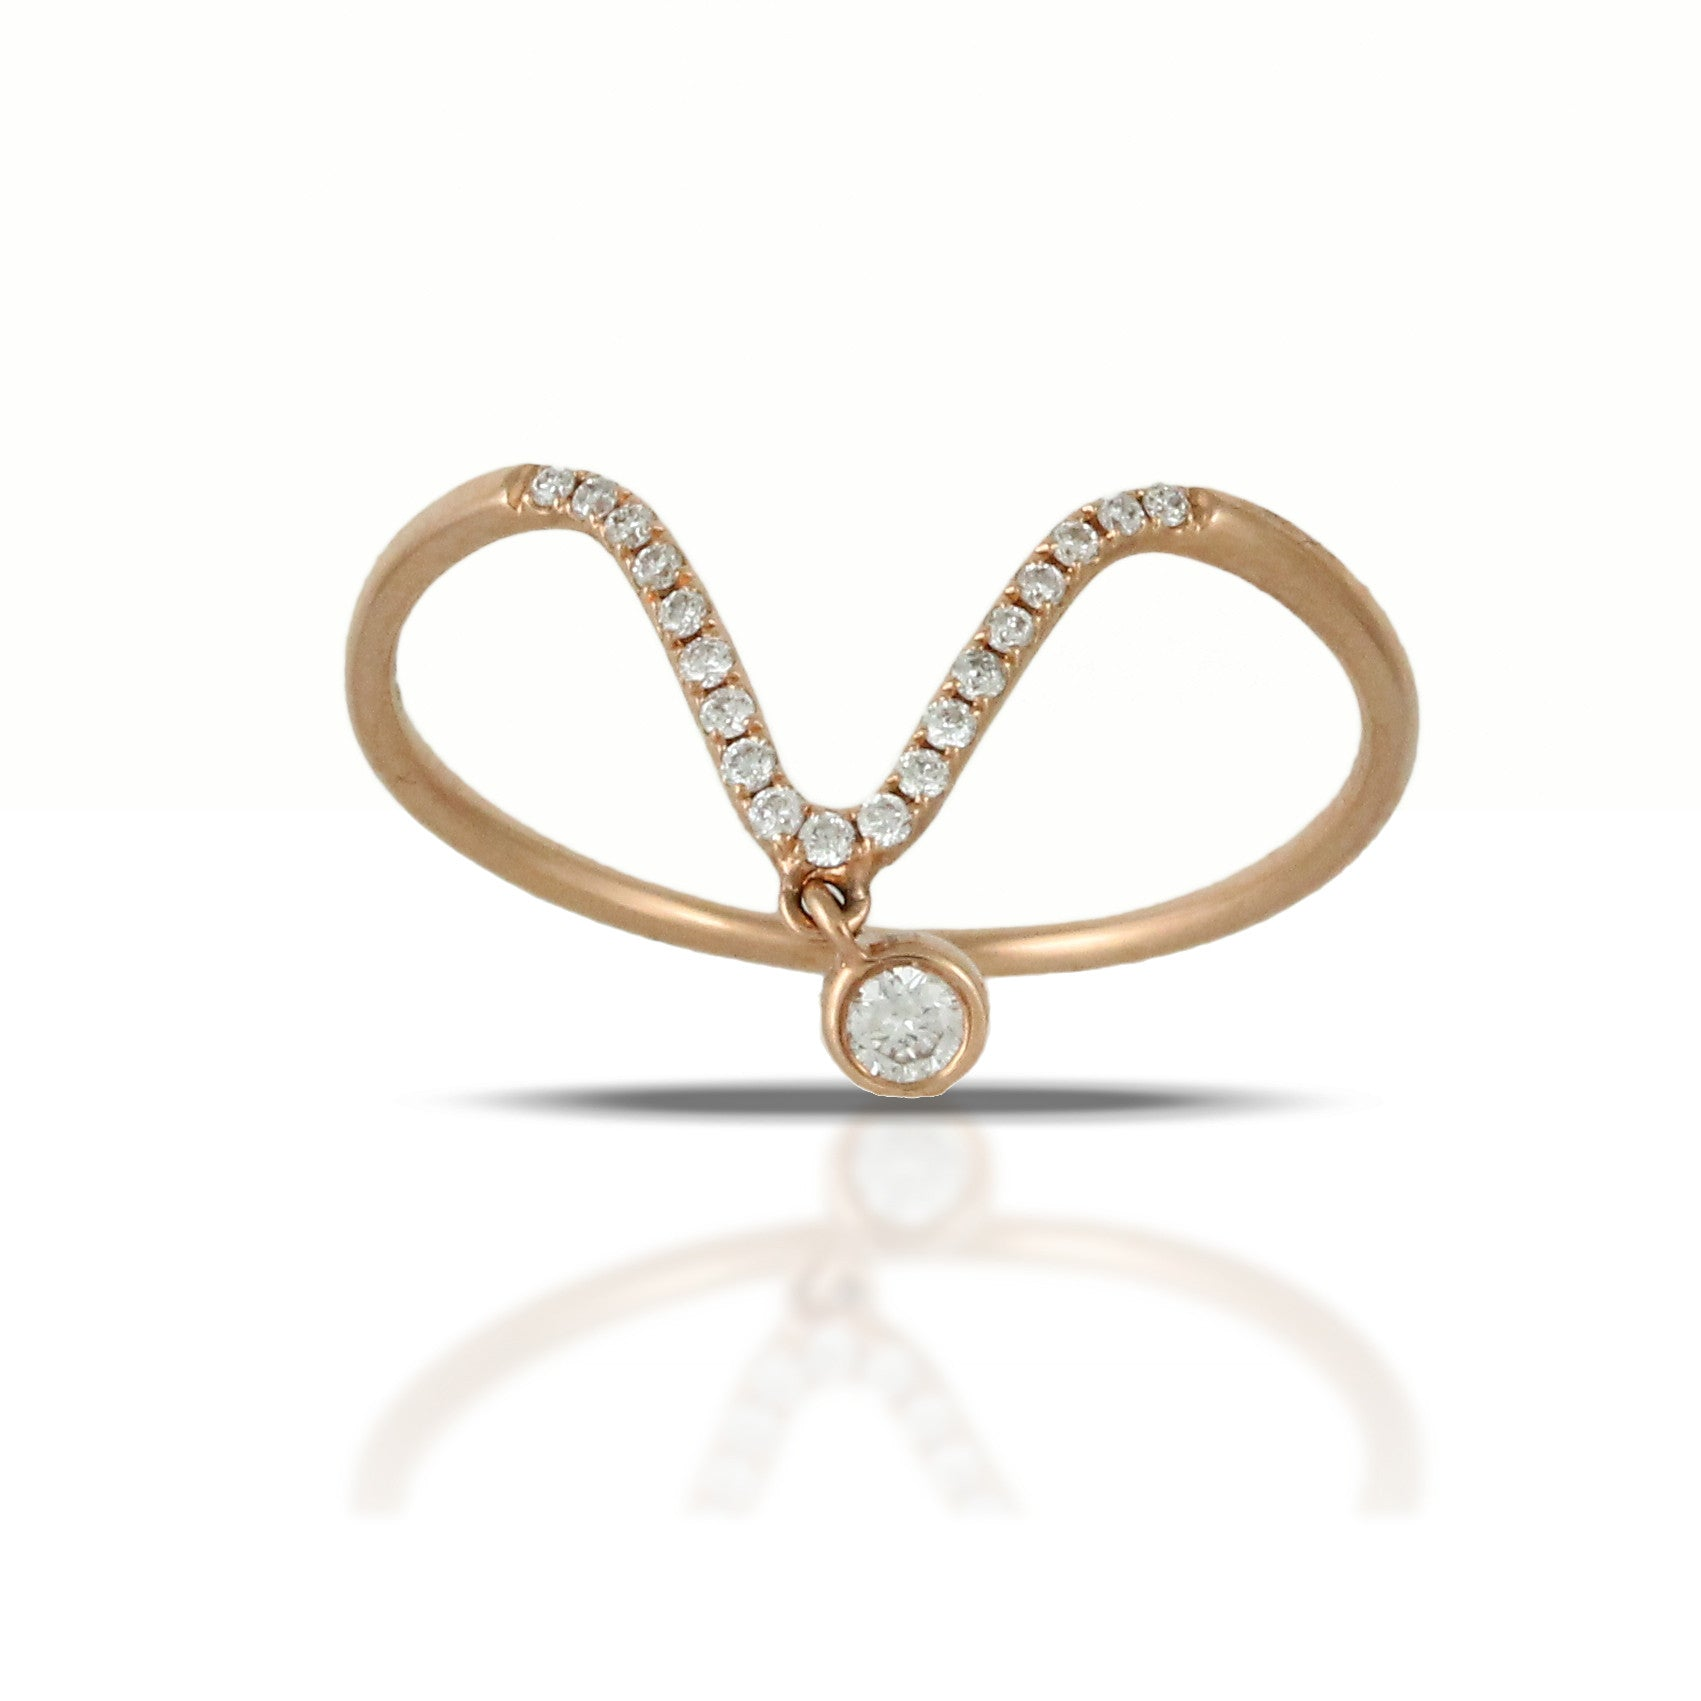 Doves Ladies 18k Rose Gold Curved Diamond Ring with a Diamond Drop